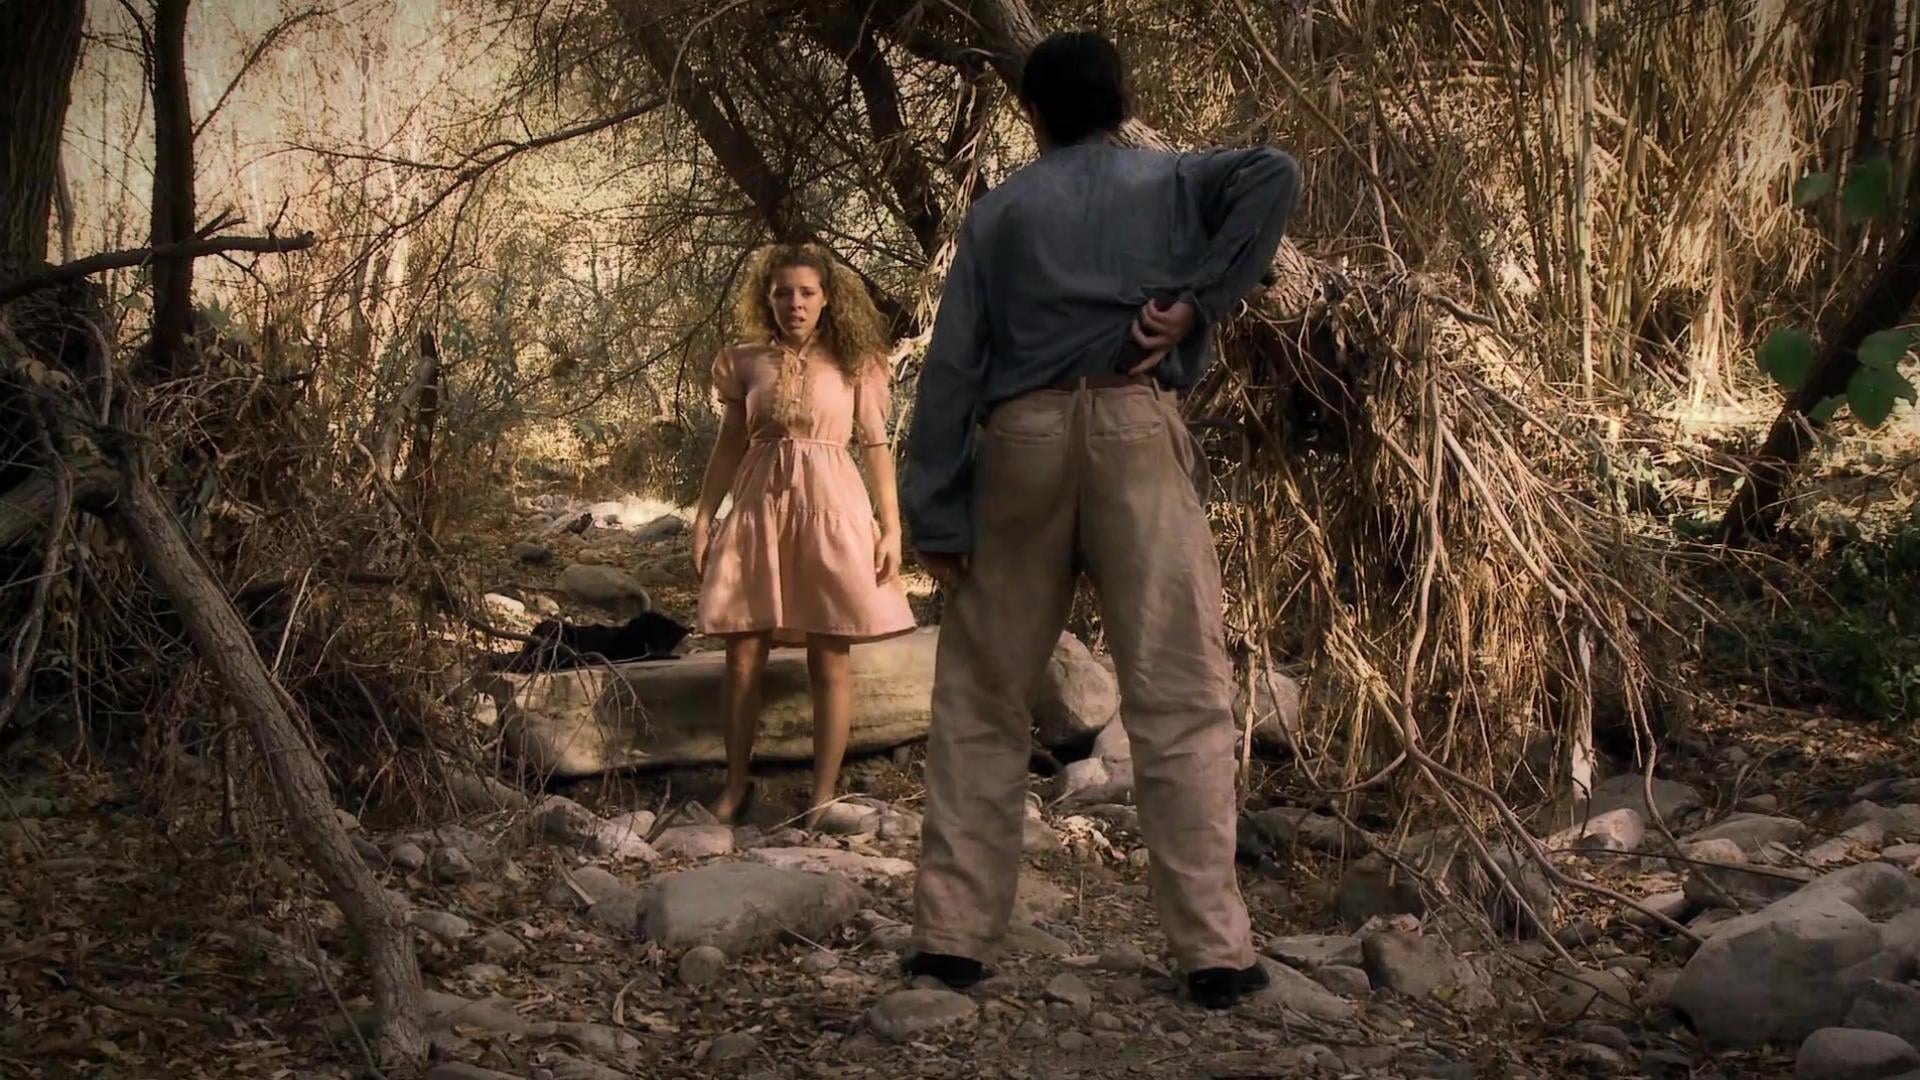 Watch Drifter: Henry Lee Lucas (2009) Full Movie Online Free | Stream Free Movies & TV Shows